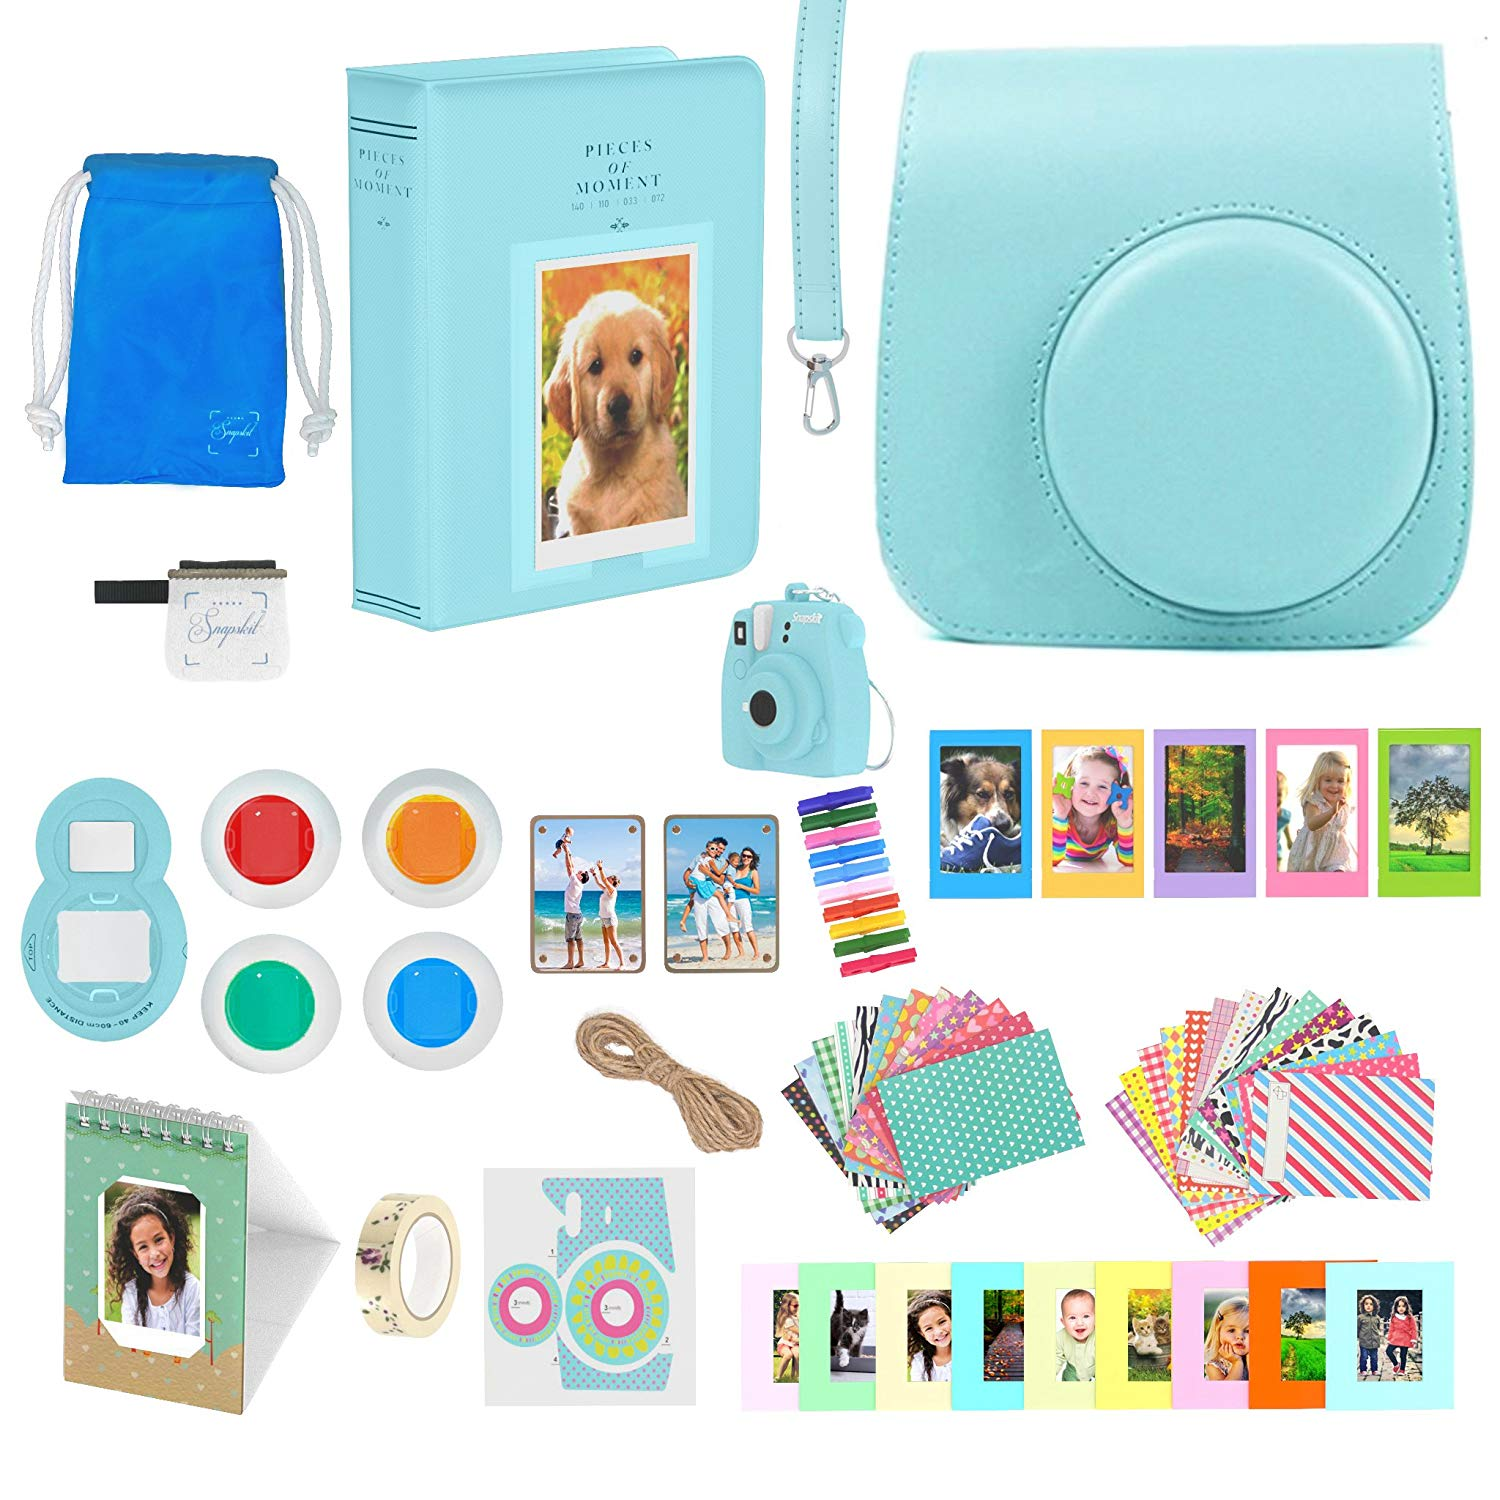 Fujifilm Instax Mini 9 Accessories Bundle - 16 Piece Kit Includes: Ice Blue Protective Case + Strap, 2 Photo Albums, Keychain, Emoji Stickers, Hanging Frames, Selfie Lens, Magnets, Gift Box